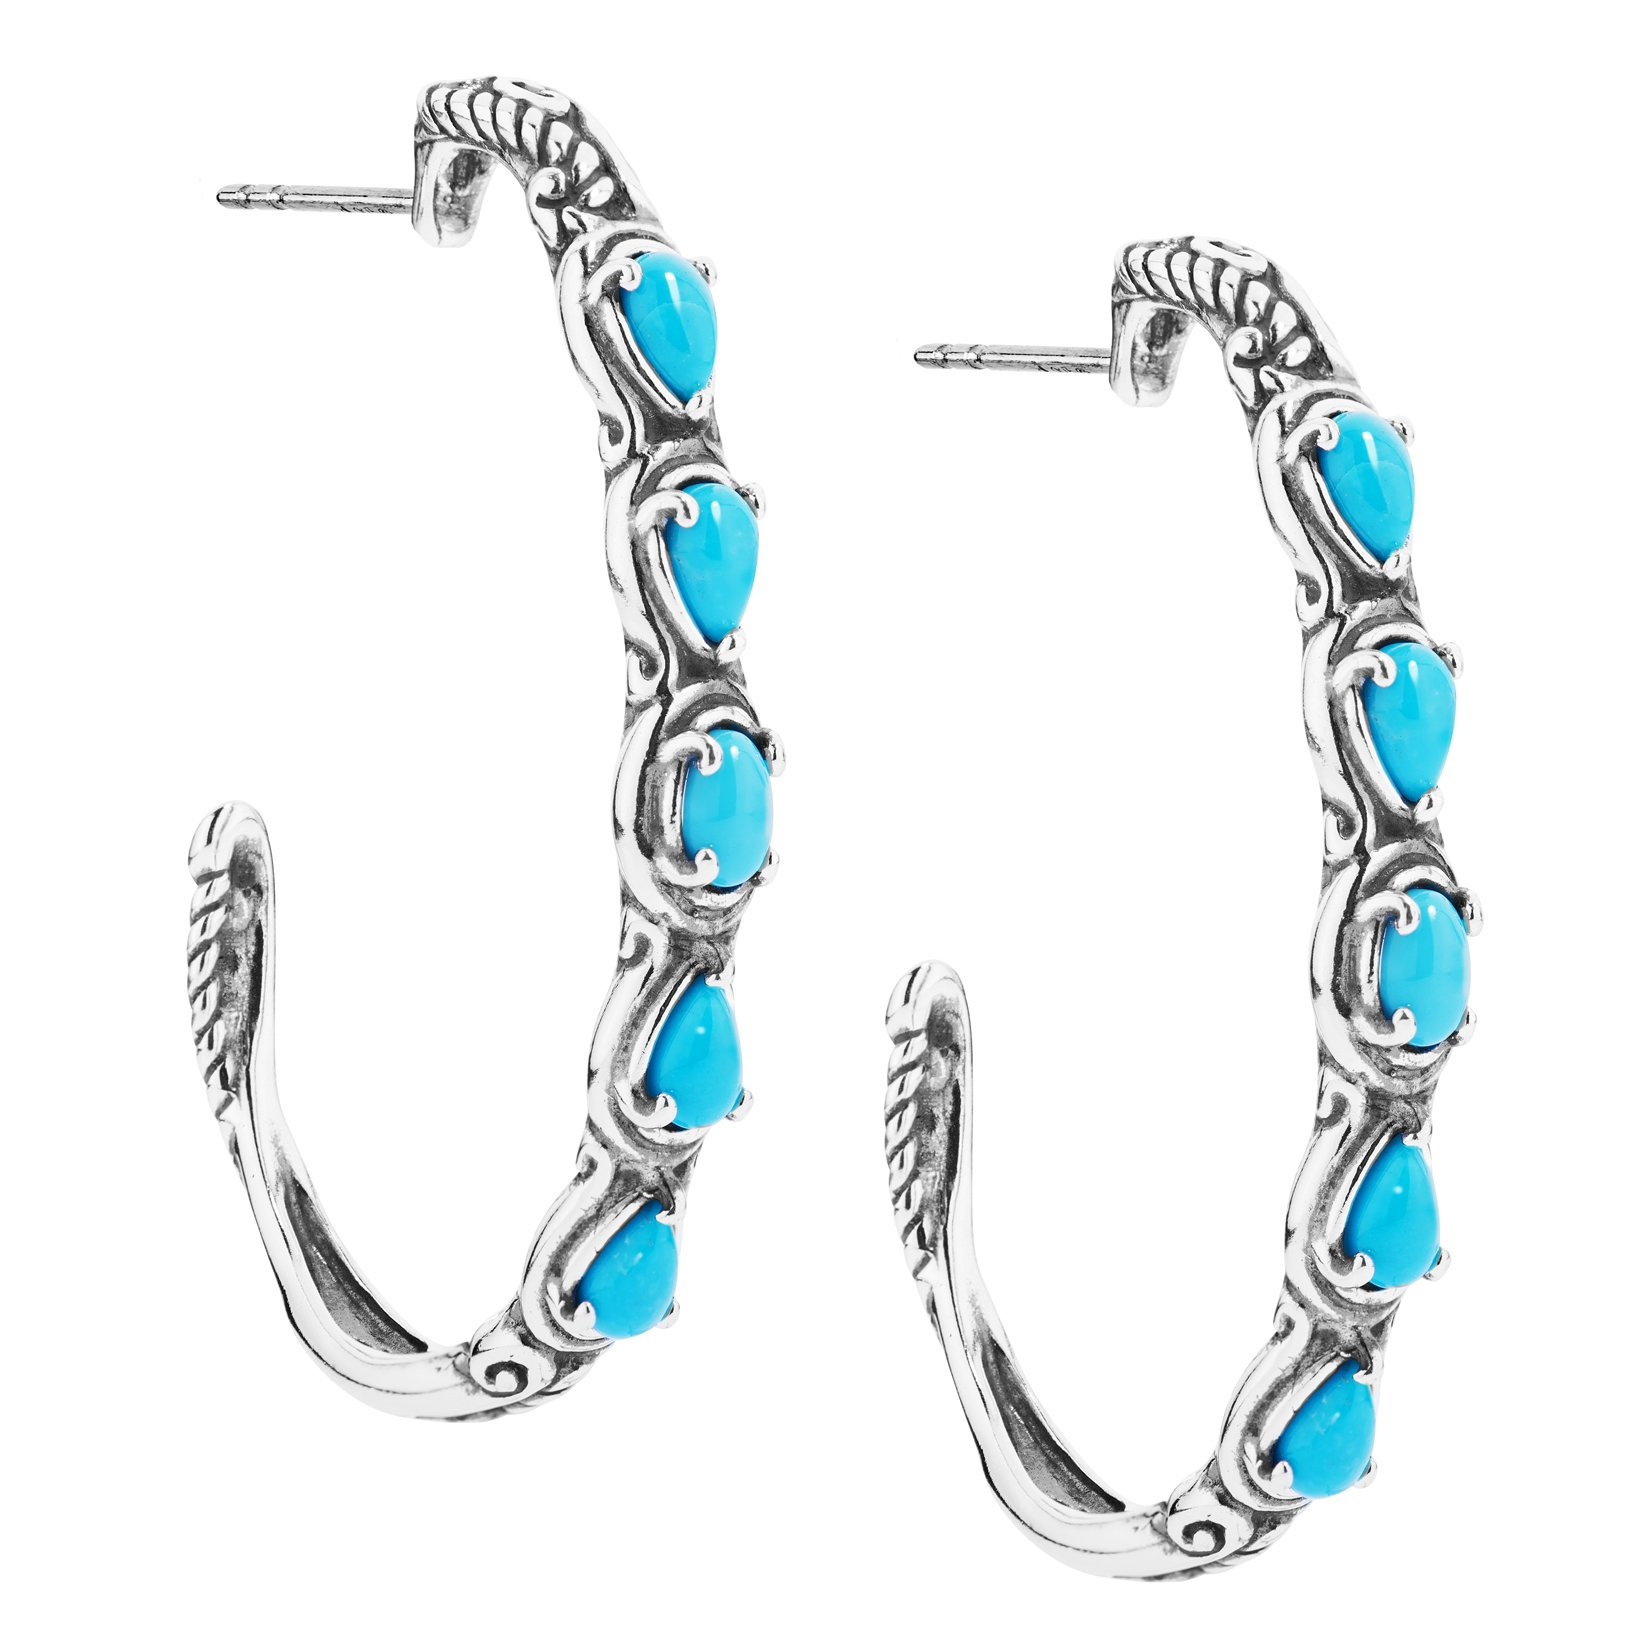 Simply Fabulous Sterling Silver & Turquoise 1 1/2 Inch Hoop Earrings